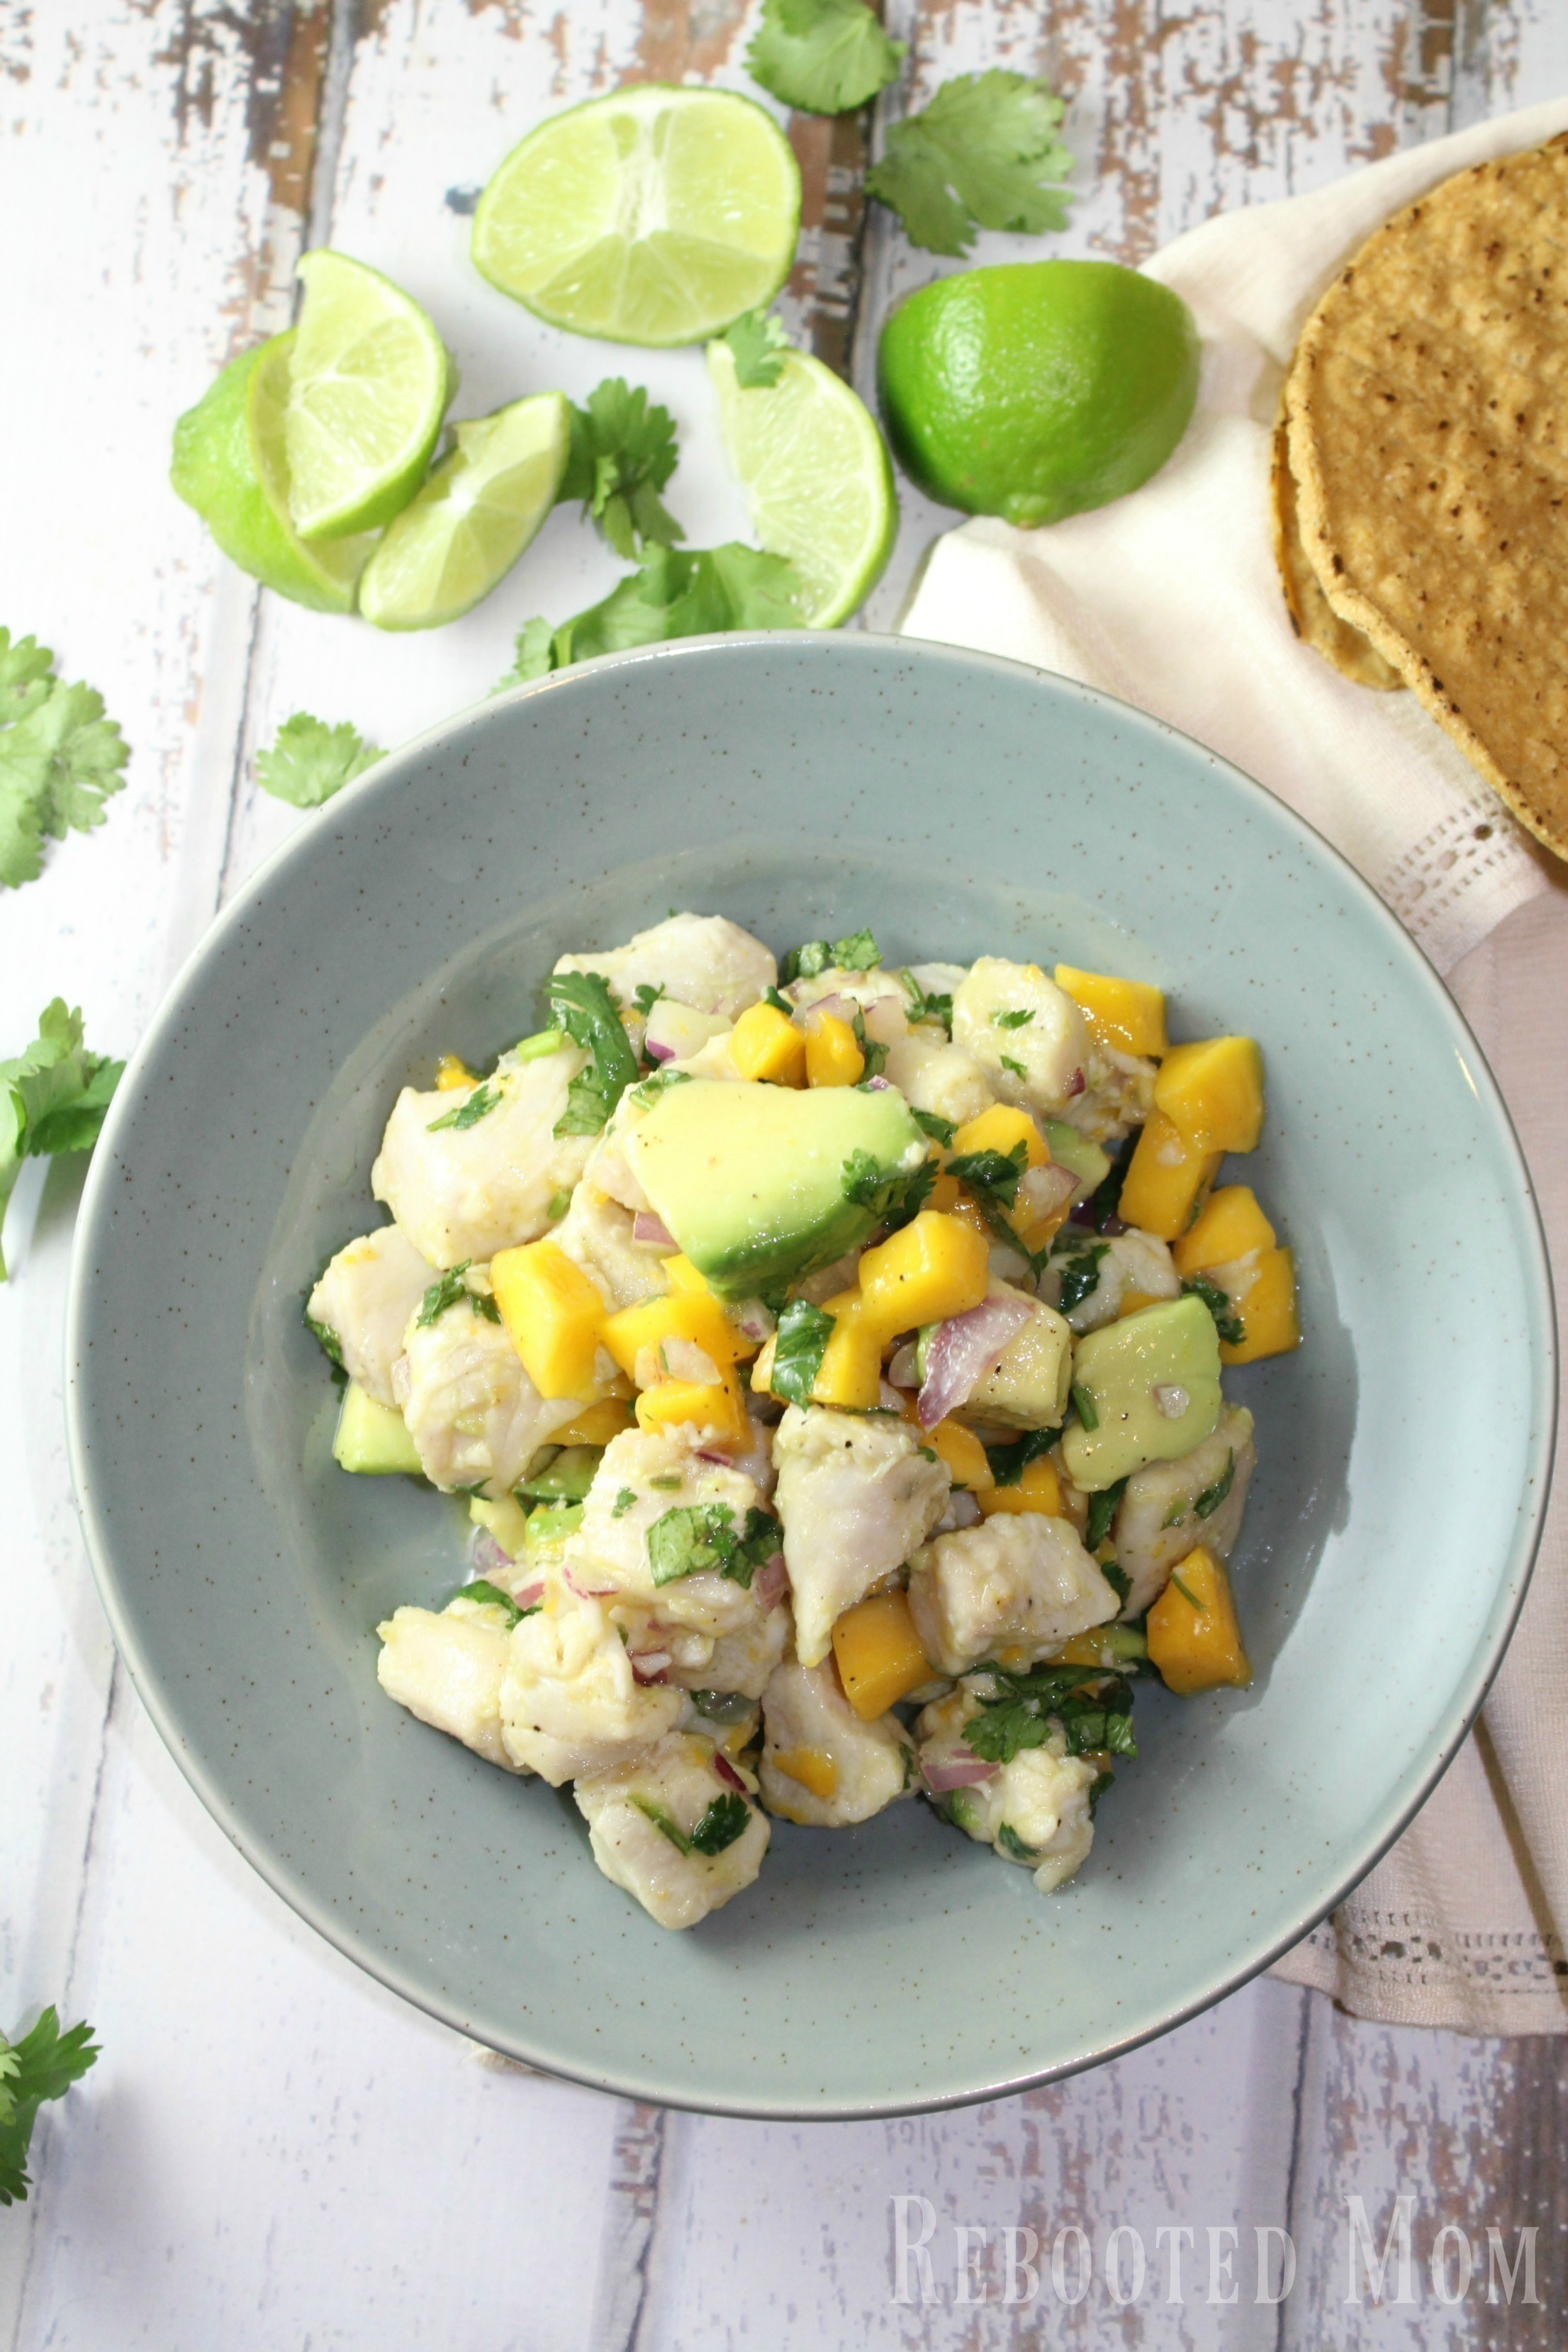 This tropical mango ceviche is a mixture of mango, avocado, onion and mahi mahi bathed in a mixture of orange juice with a punch of pepper. Best eaten with tostadas or tortilla chips.